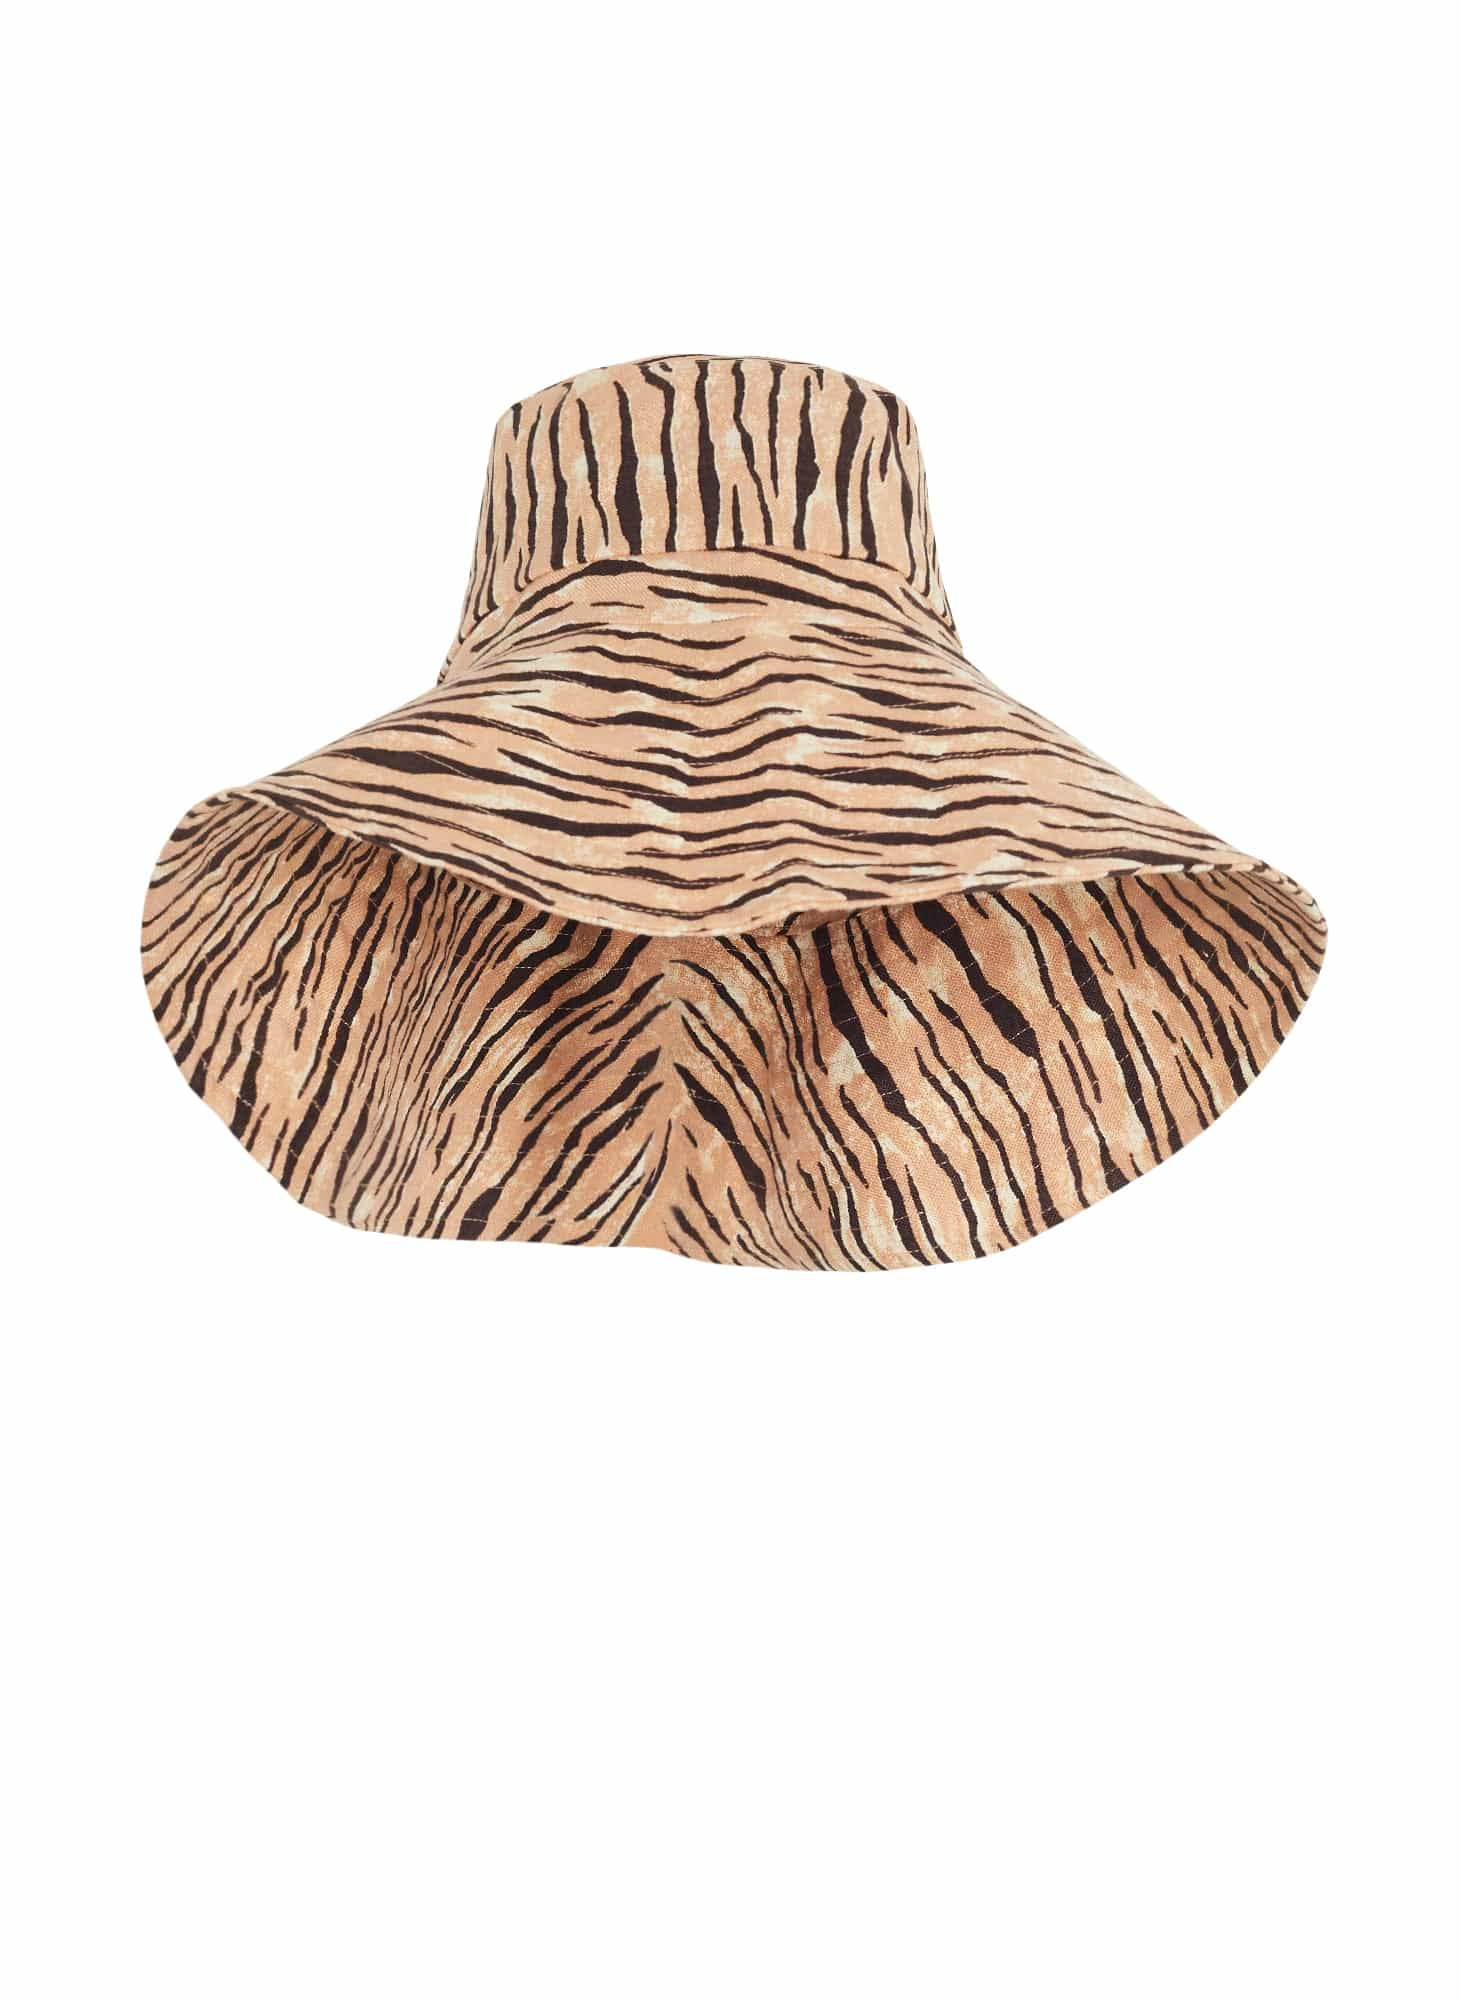 Frederikke Sun Hat Wlydie Animal